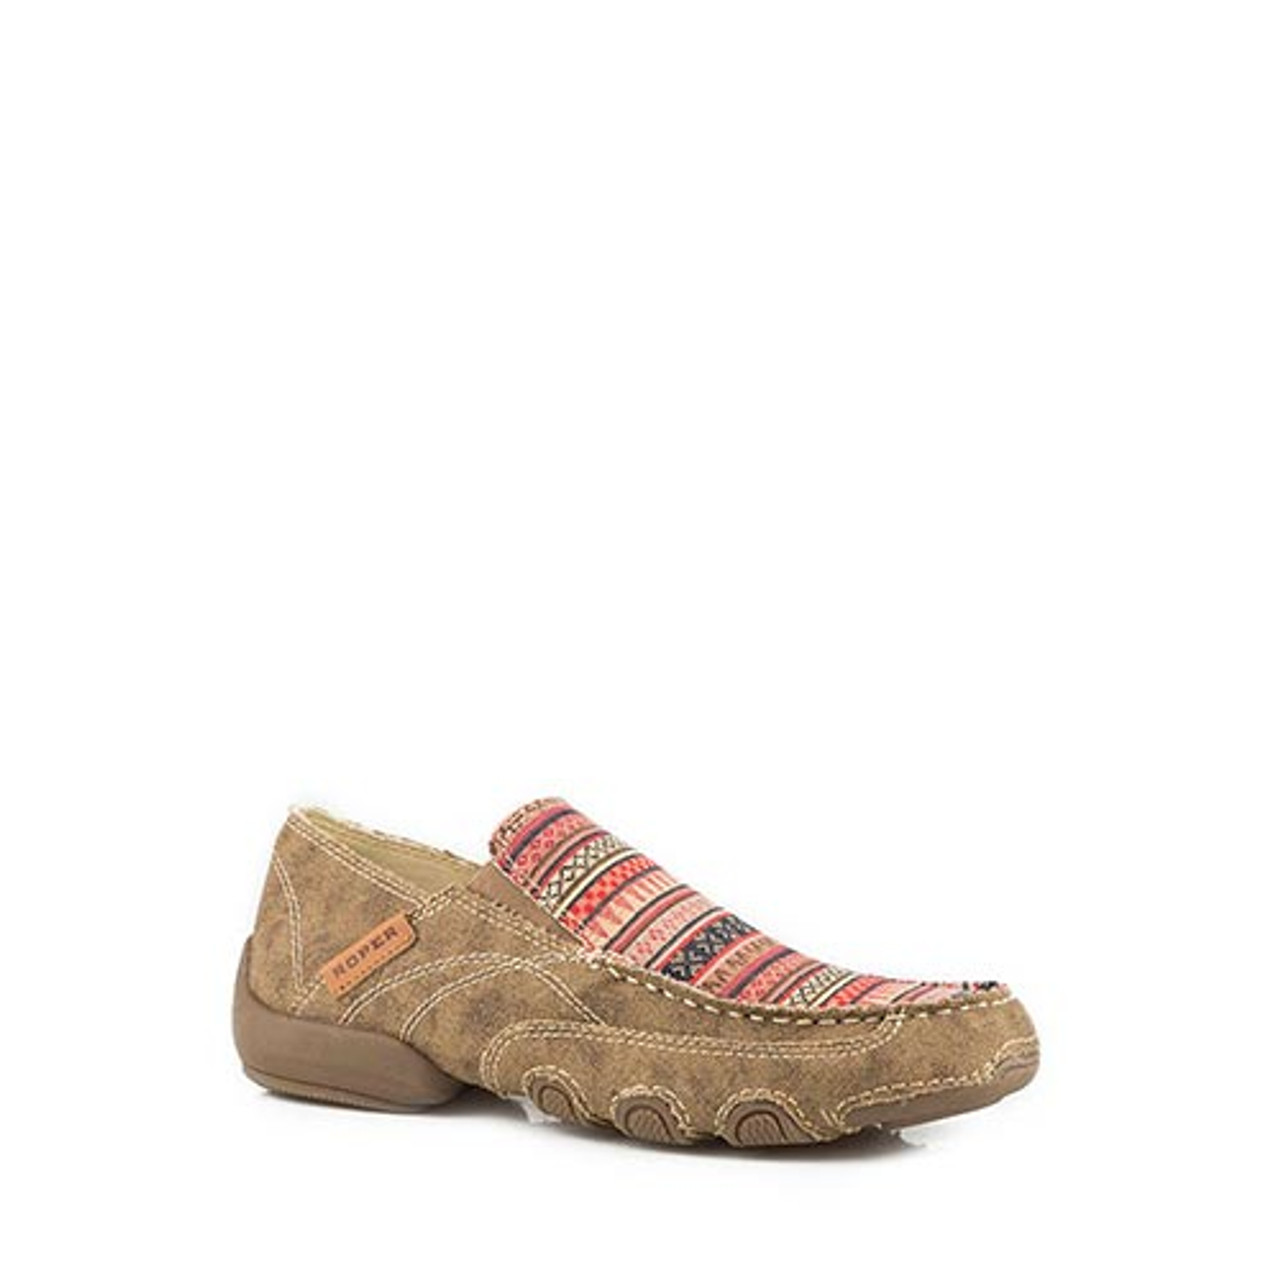 Driving Moccasin Slip-On